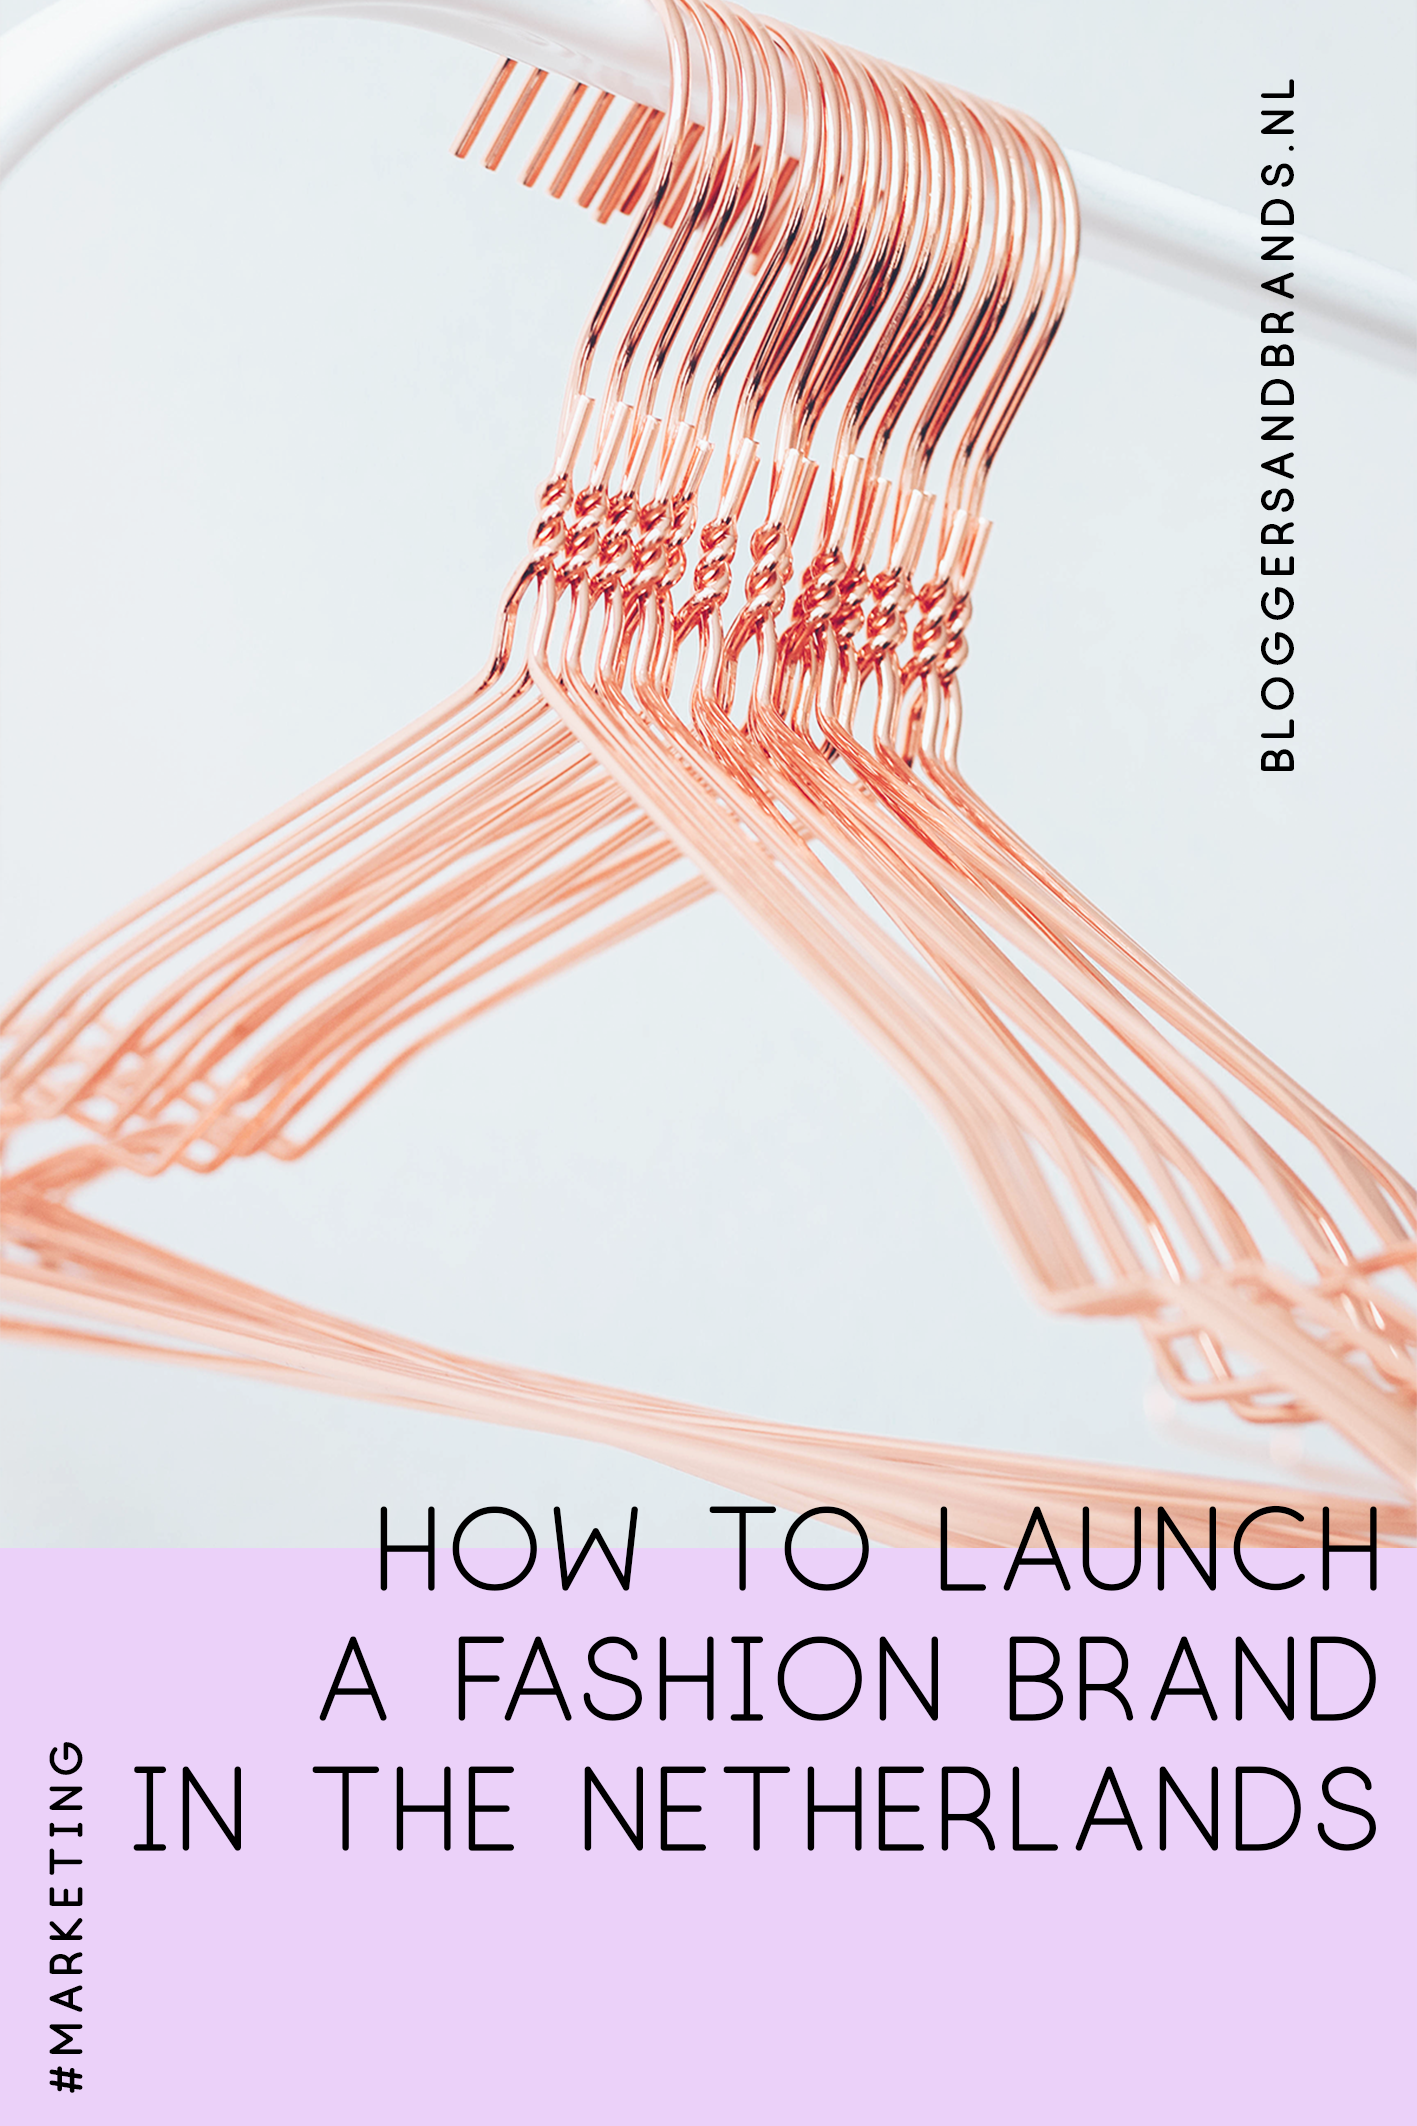 Launch your fashion brand in the Netherlands